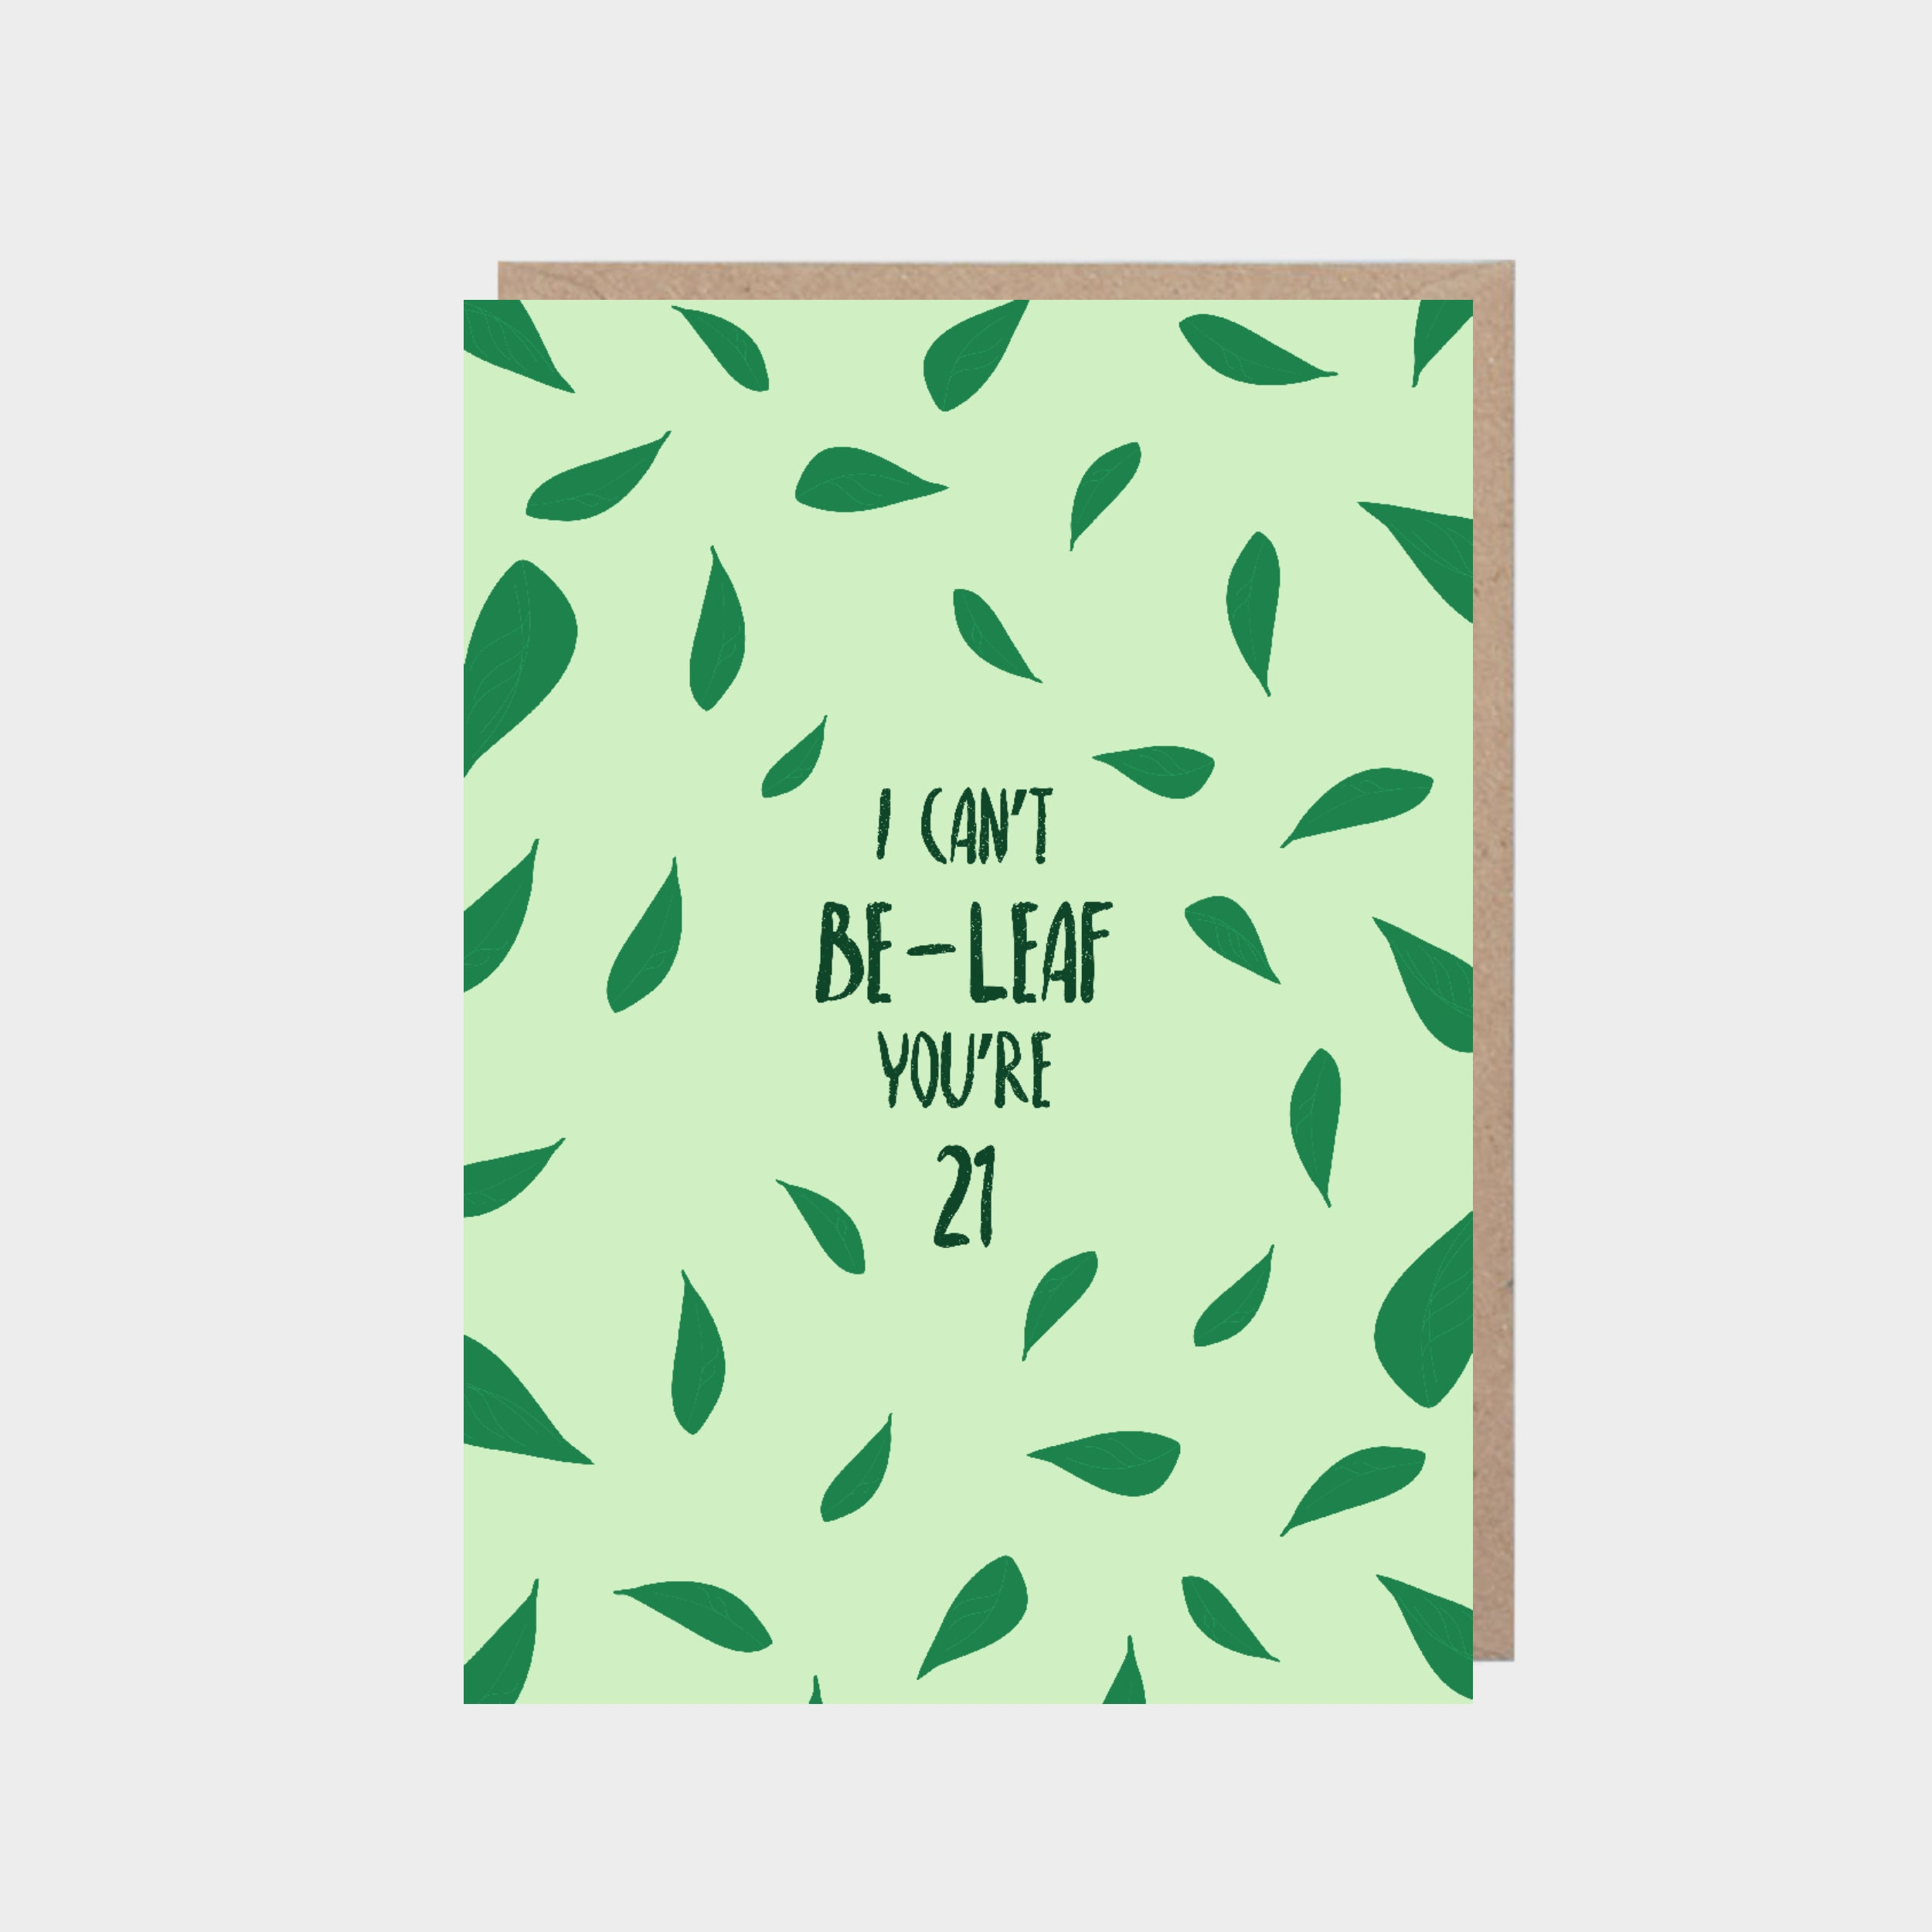 Standing light green card with illustrated leaves, with a brown kraft envelope